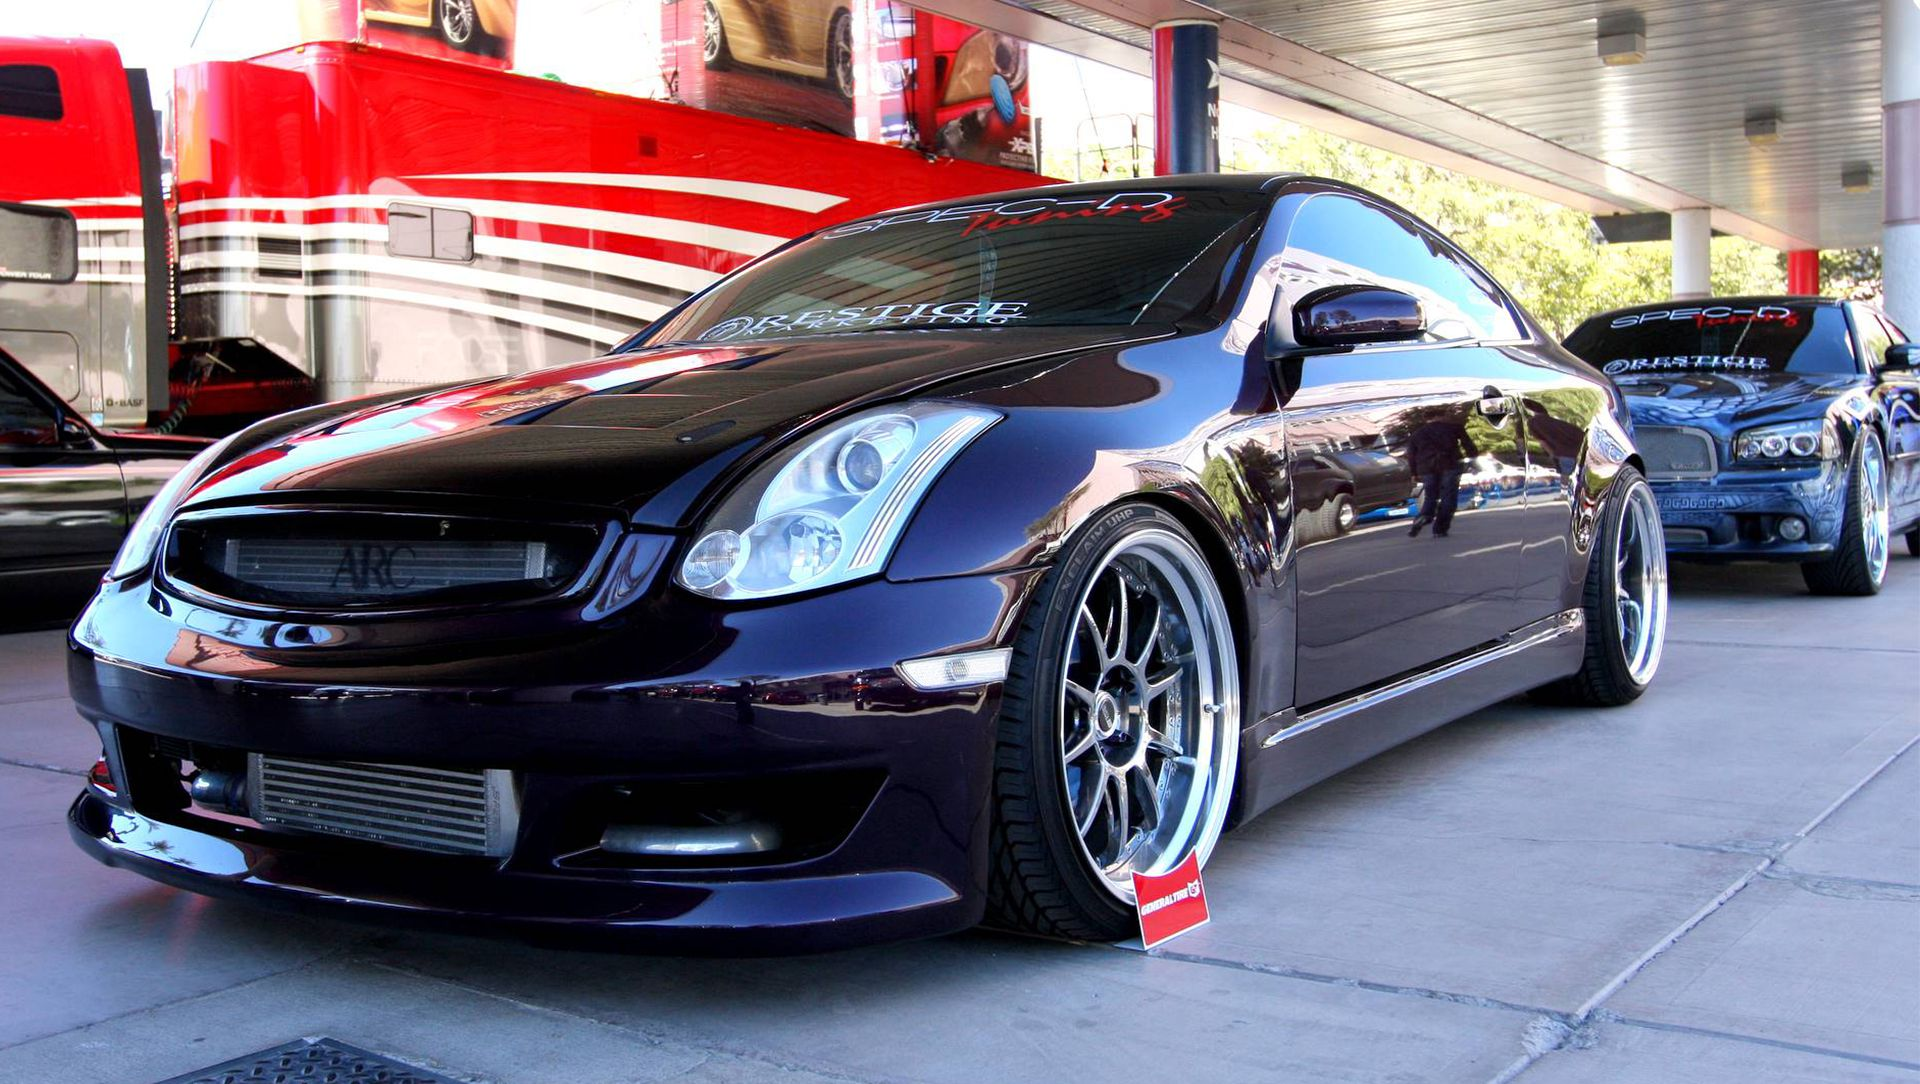 100 reviews infiniti g35 coupe weight on margojoyo 100 reviews g35 coupe specs on margojoyocom vanachro Image collections